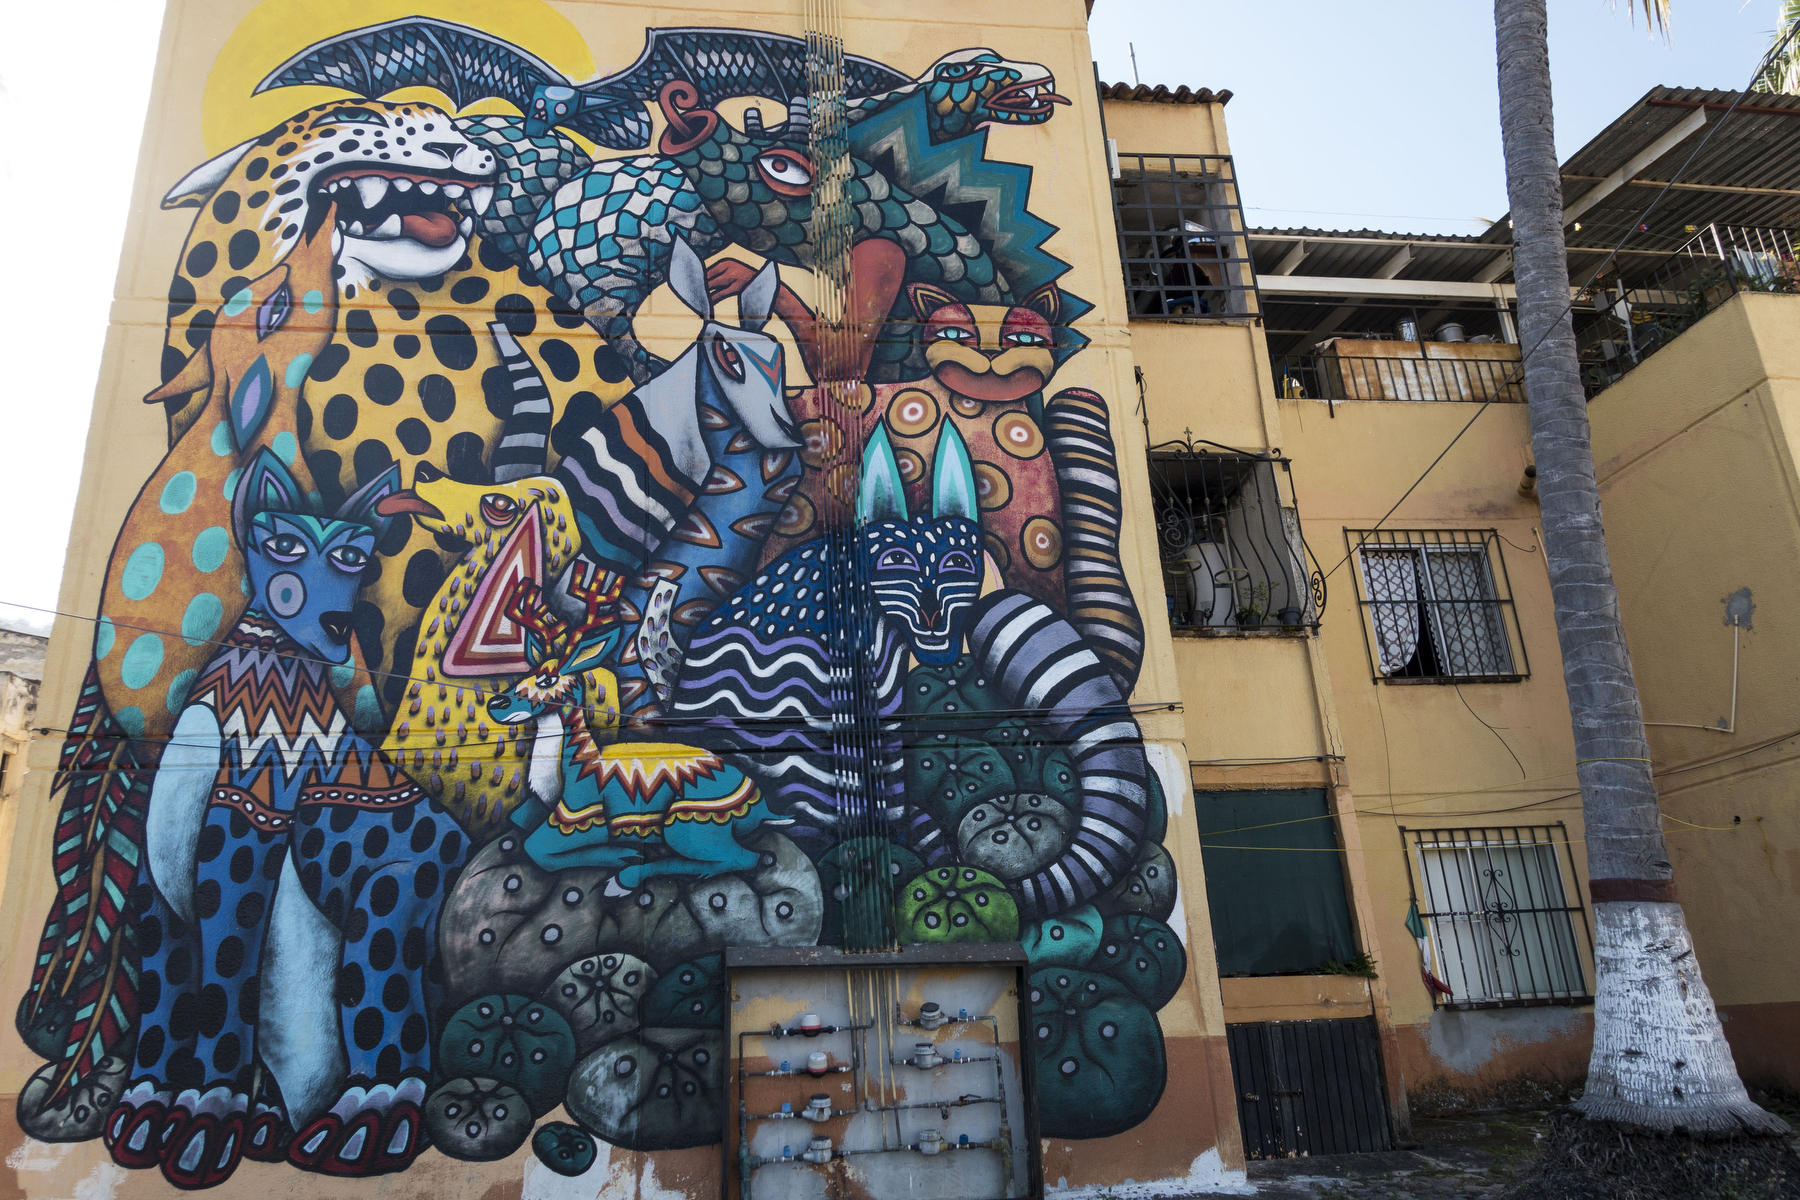 Colorful, imaginatively rendered animals , tigers, bats, snakes and others painted on a four story residential building. : PUERTO VALLARTA - Wall Art & Bicycle Tour : Viviane Moos |  Documentary Photographer